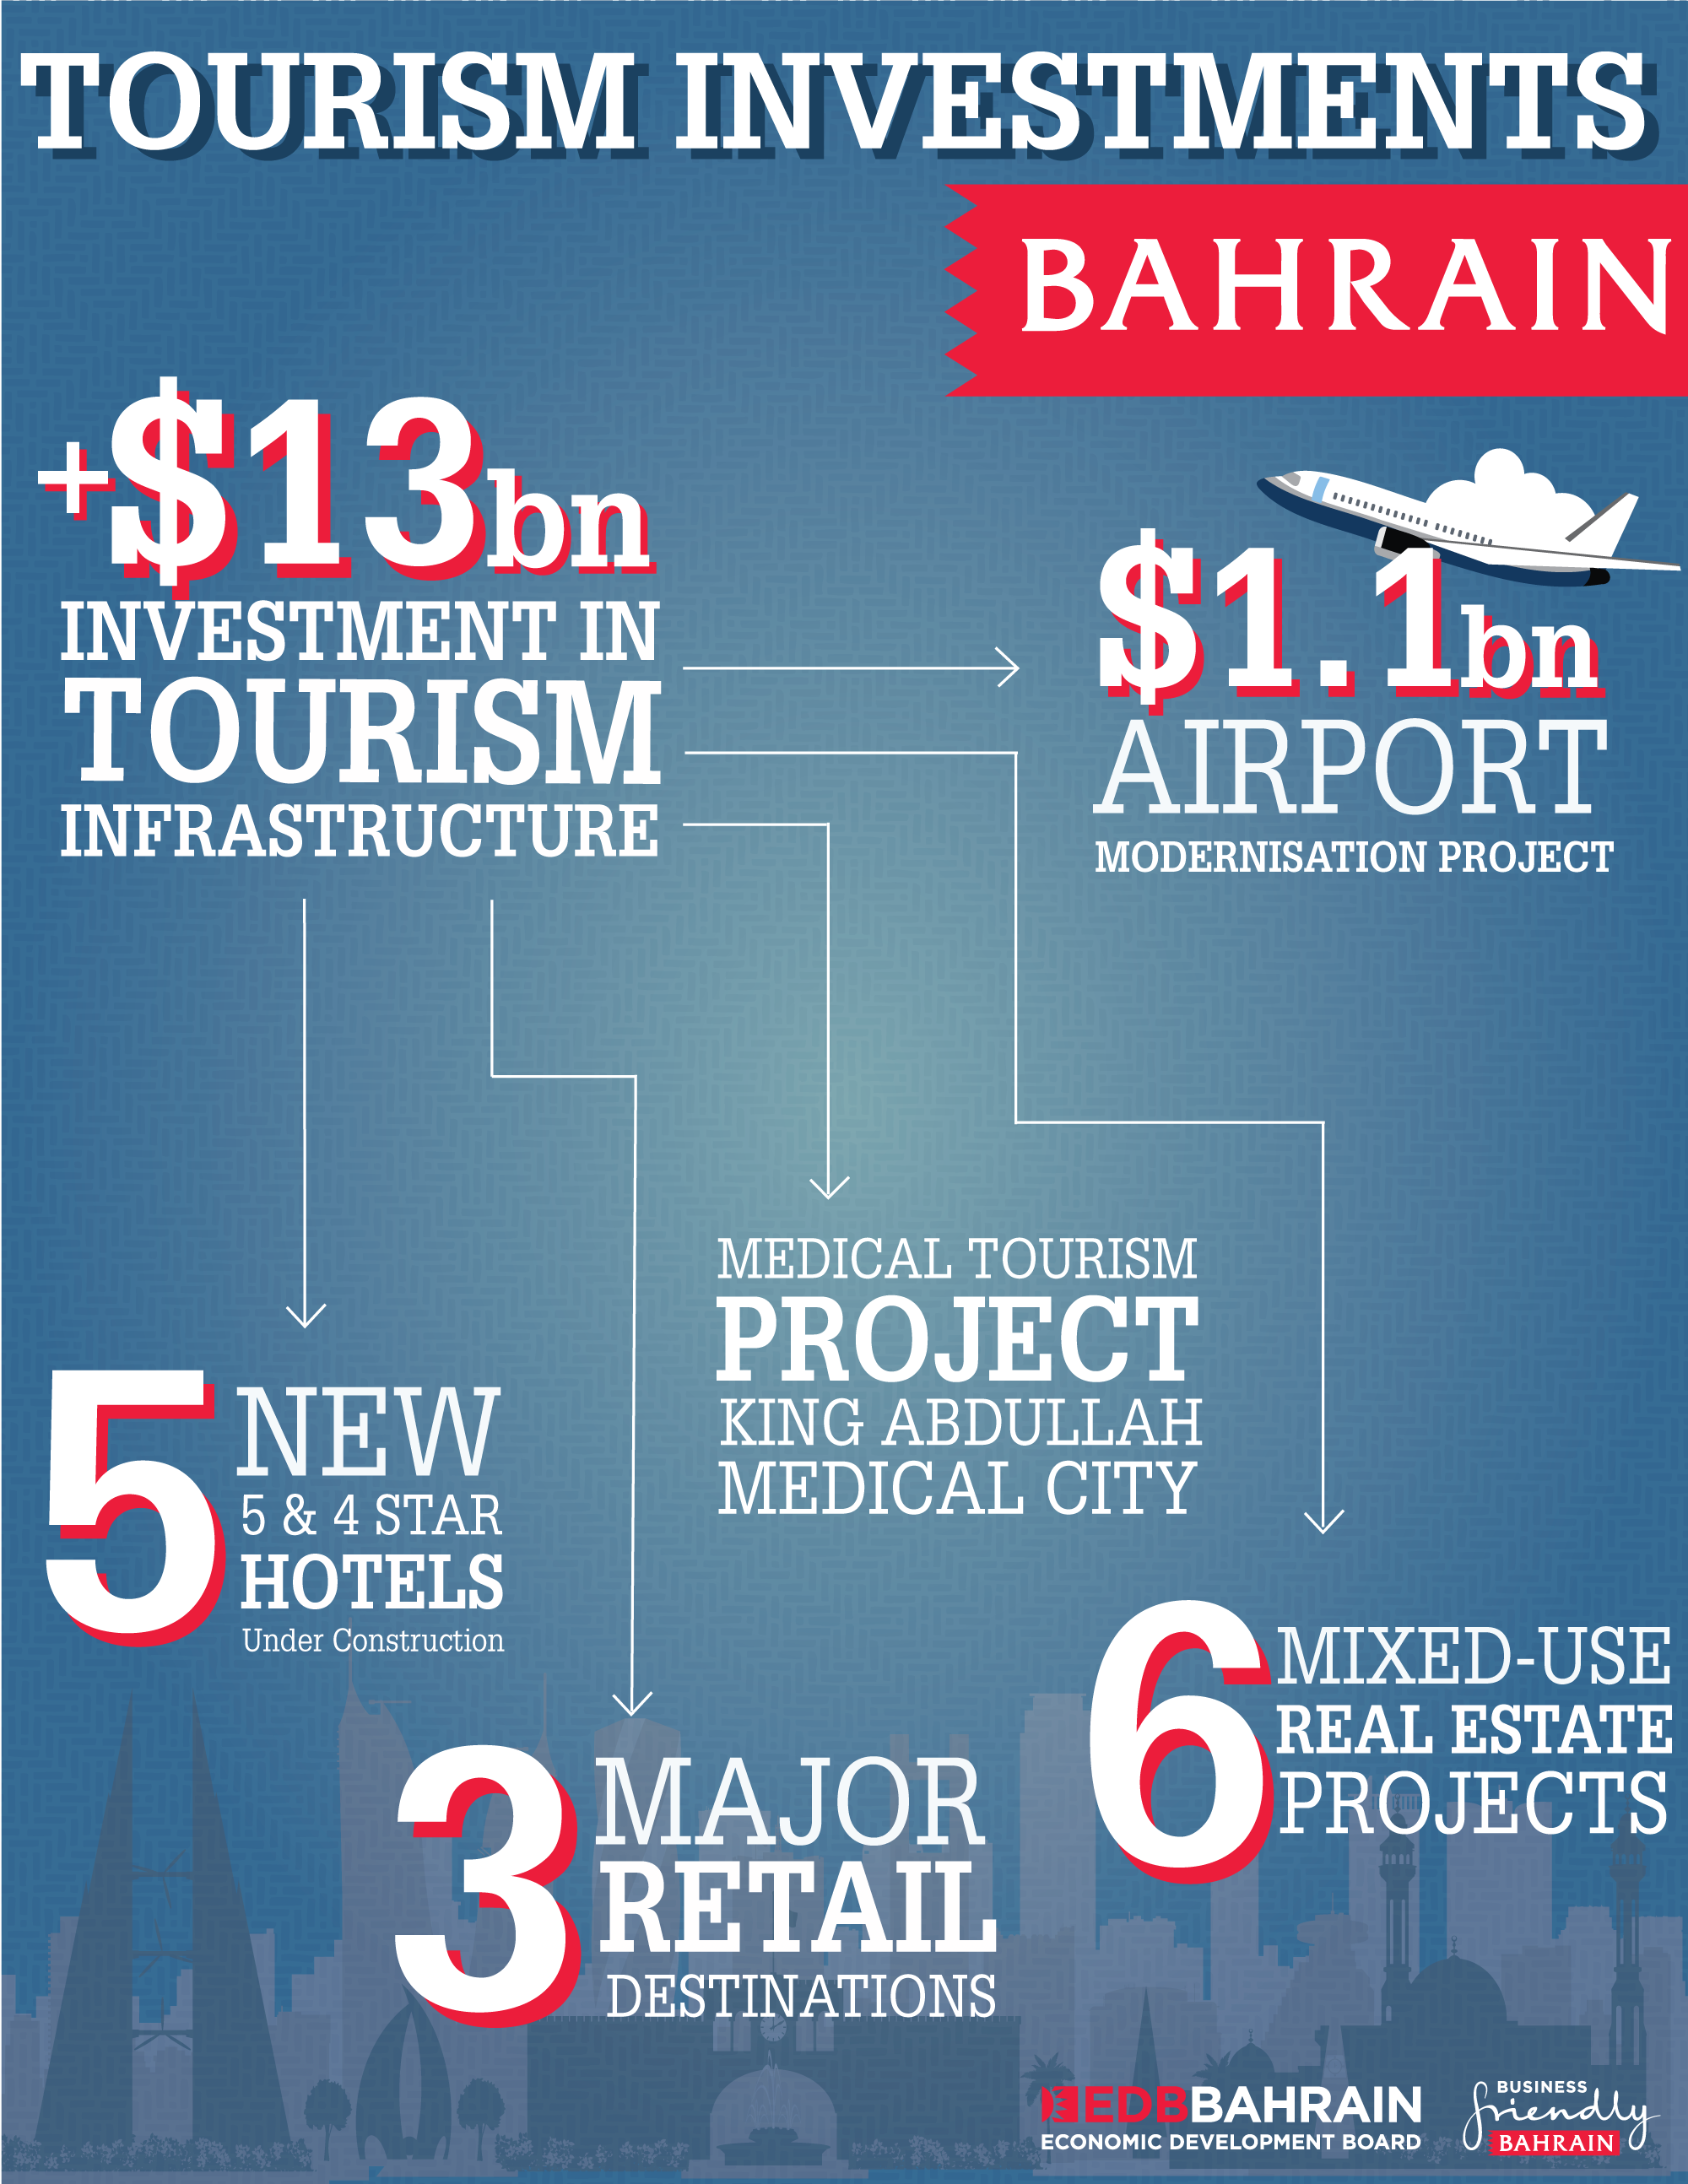 Bahrain is seeing rapid tourism growth